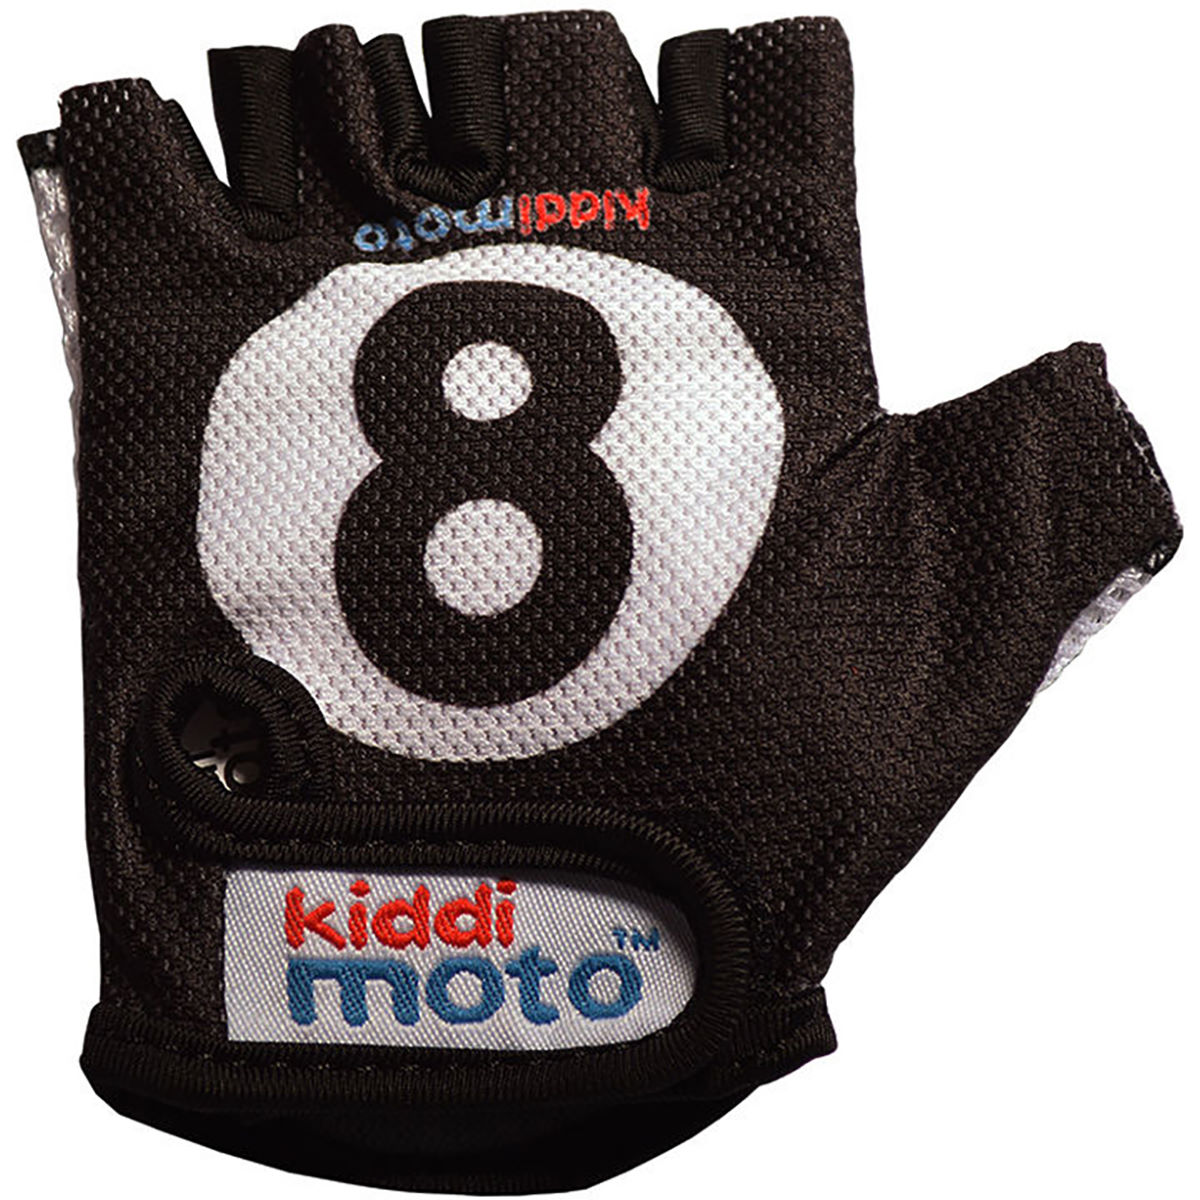 Kiddimoto 8 Ball Gloves - Guantes